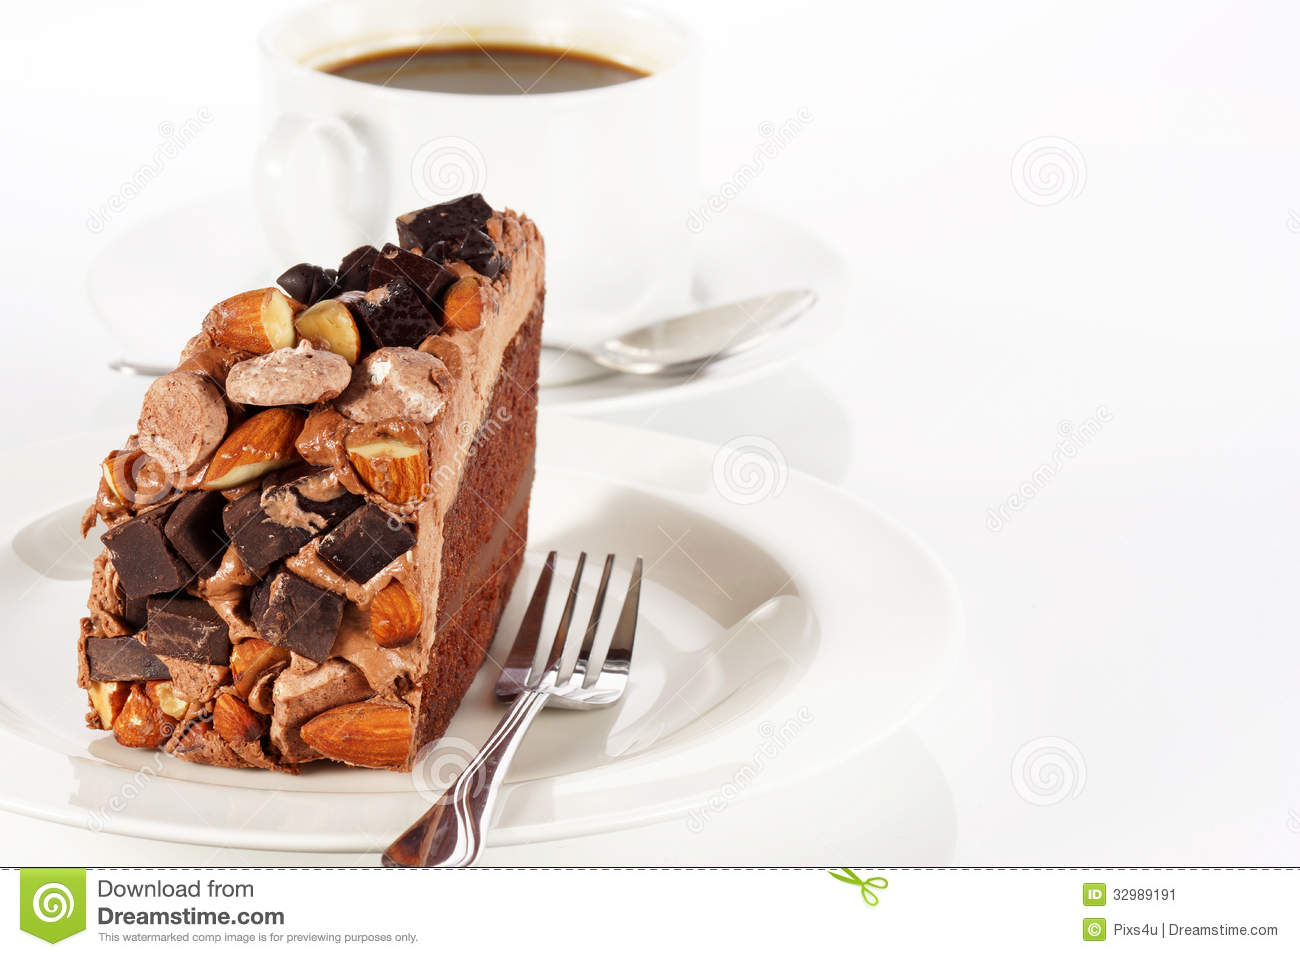 Nut Topping Chocolate Cake Design